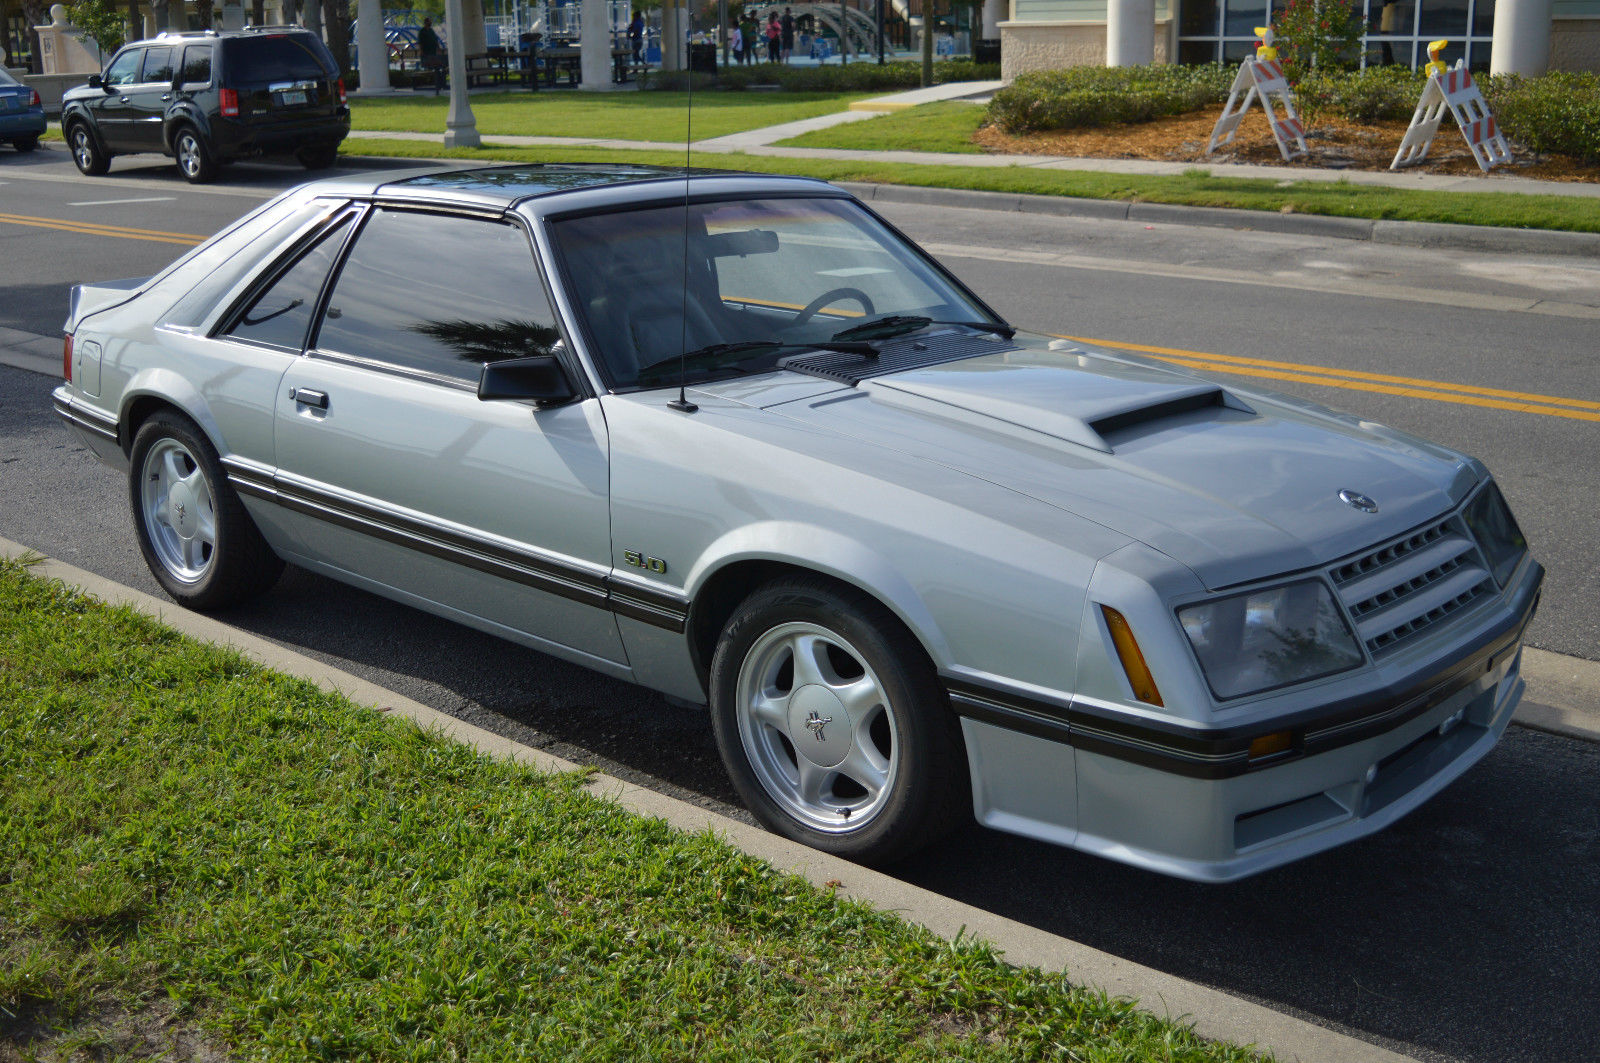 1982 Mustang Gt For Sale >> 1982 MUSTANG GT T-TOP - Classic Ford Mustang 1982 for sale